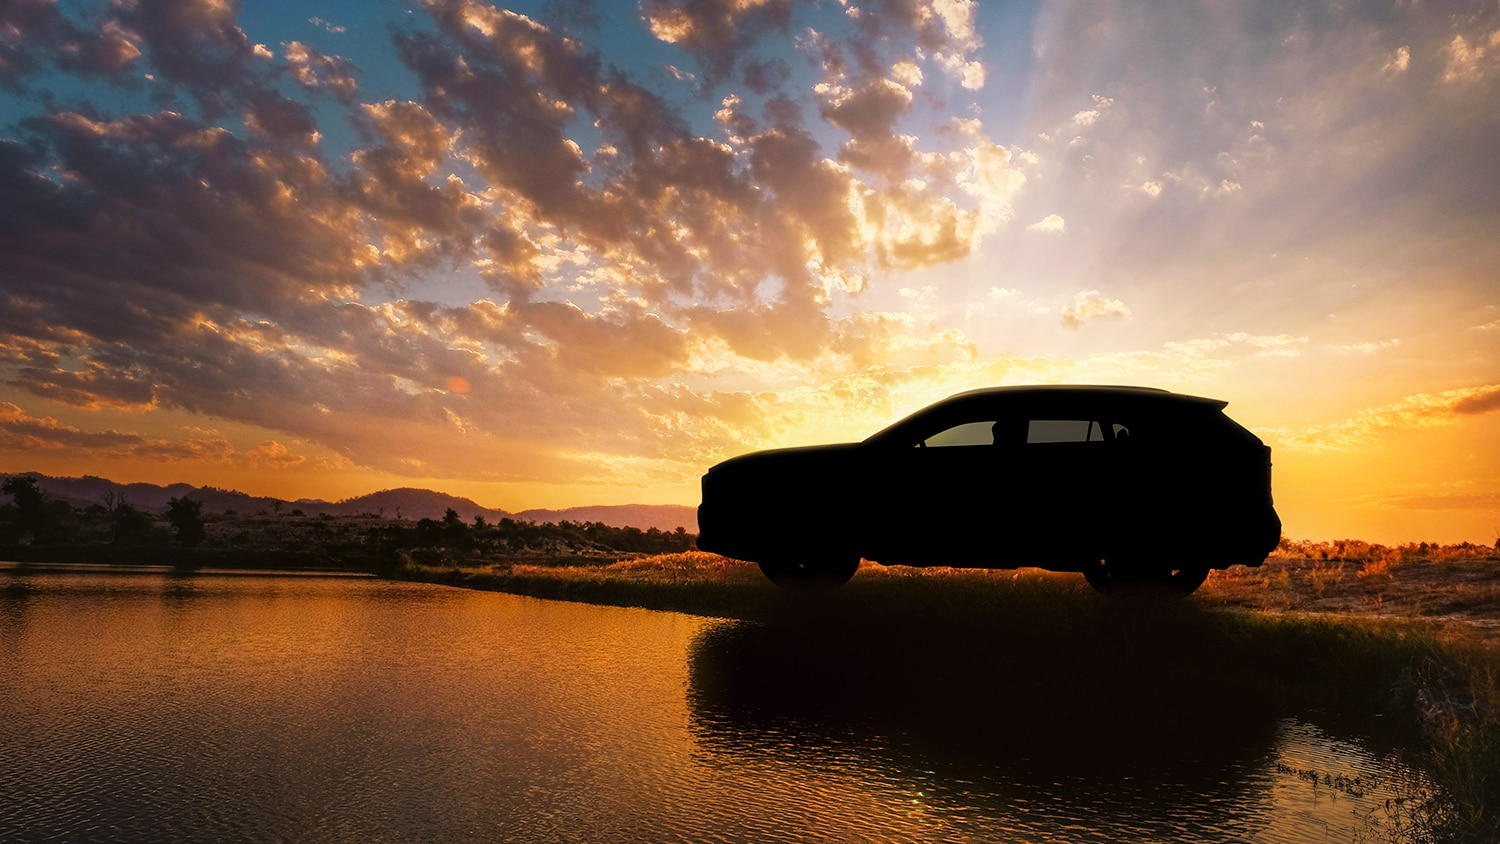 RAV4 silhouette in front of a sunset